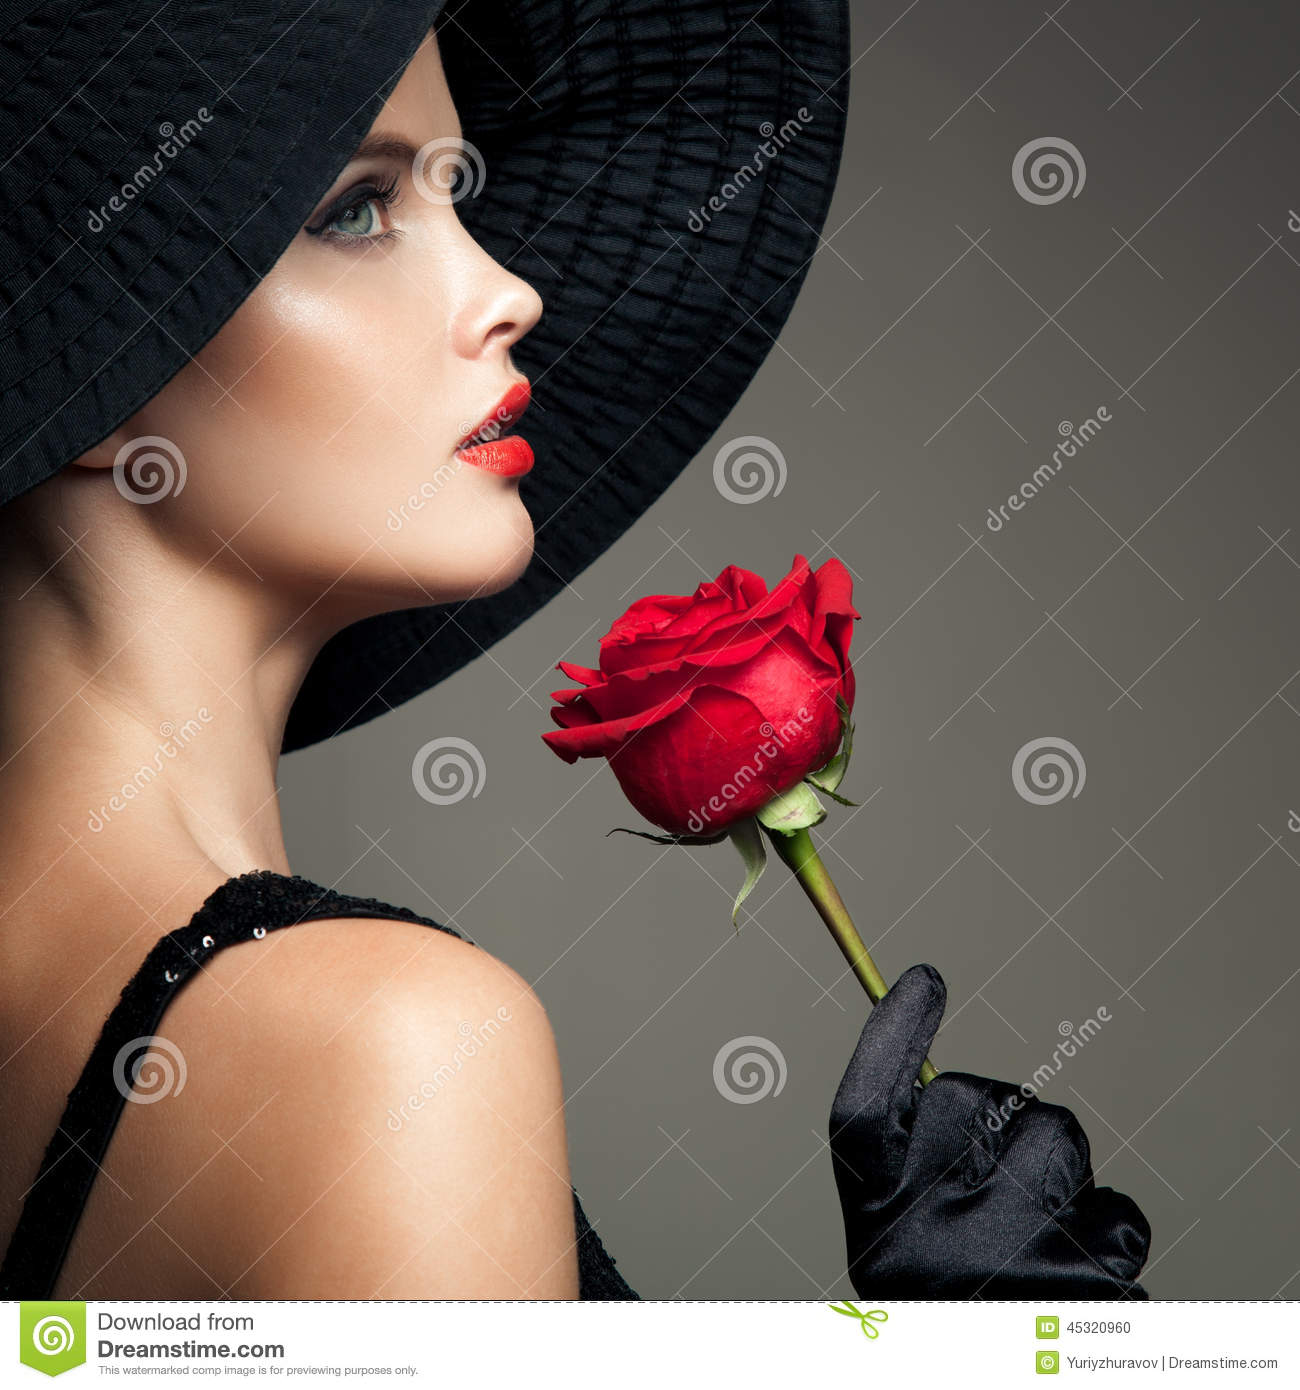 Beautiful Woman With Red Rose. Retro Fashion Image.